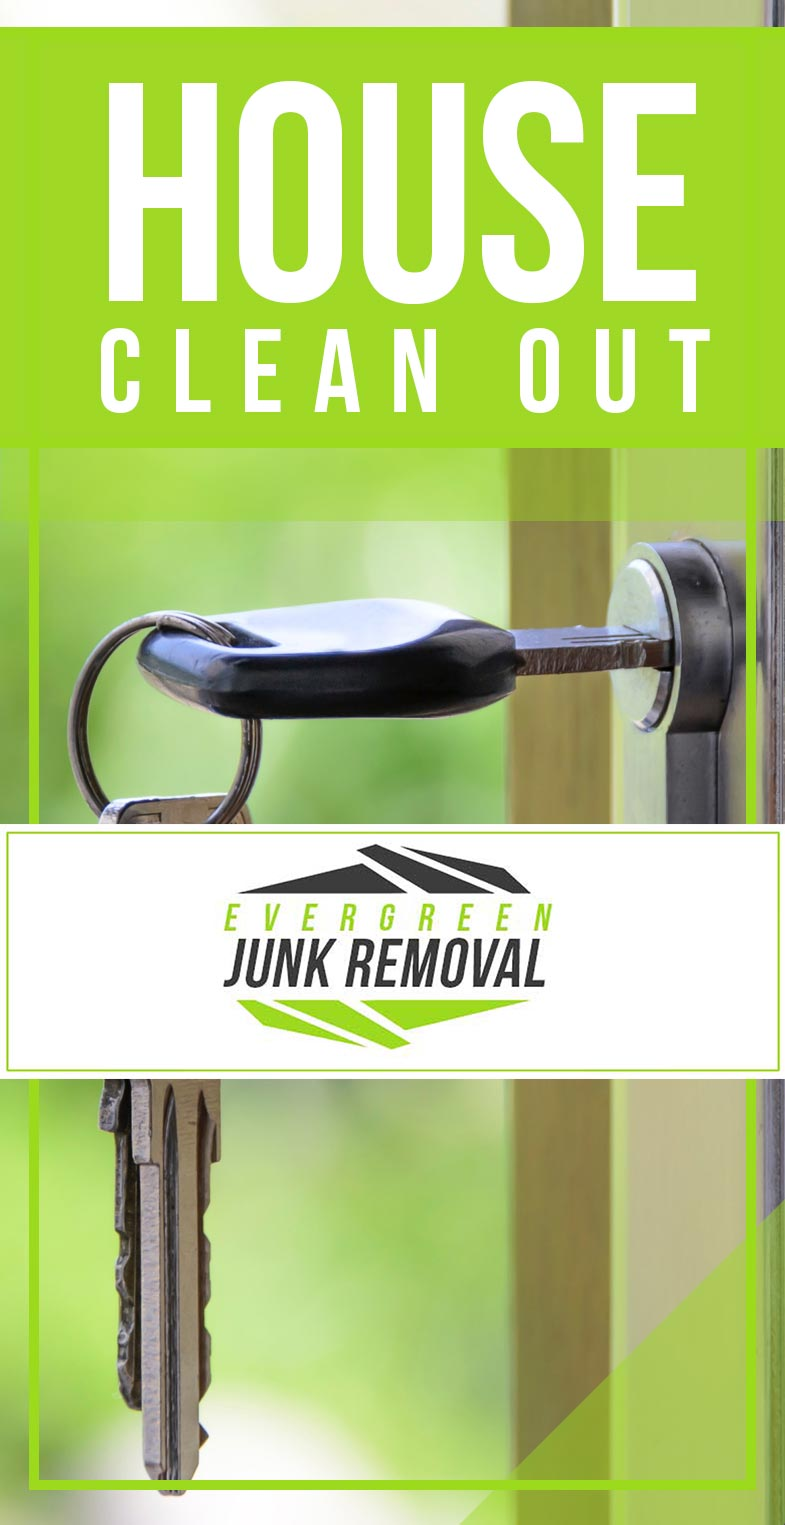 Junk Removal Palm Beach Shores House Clean Out